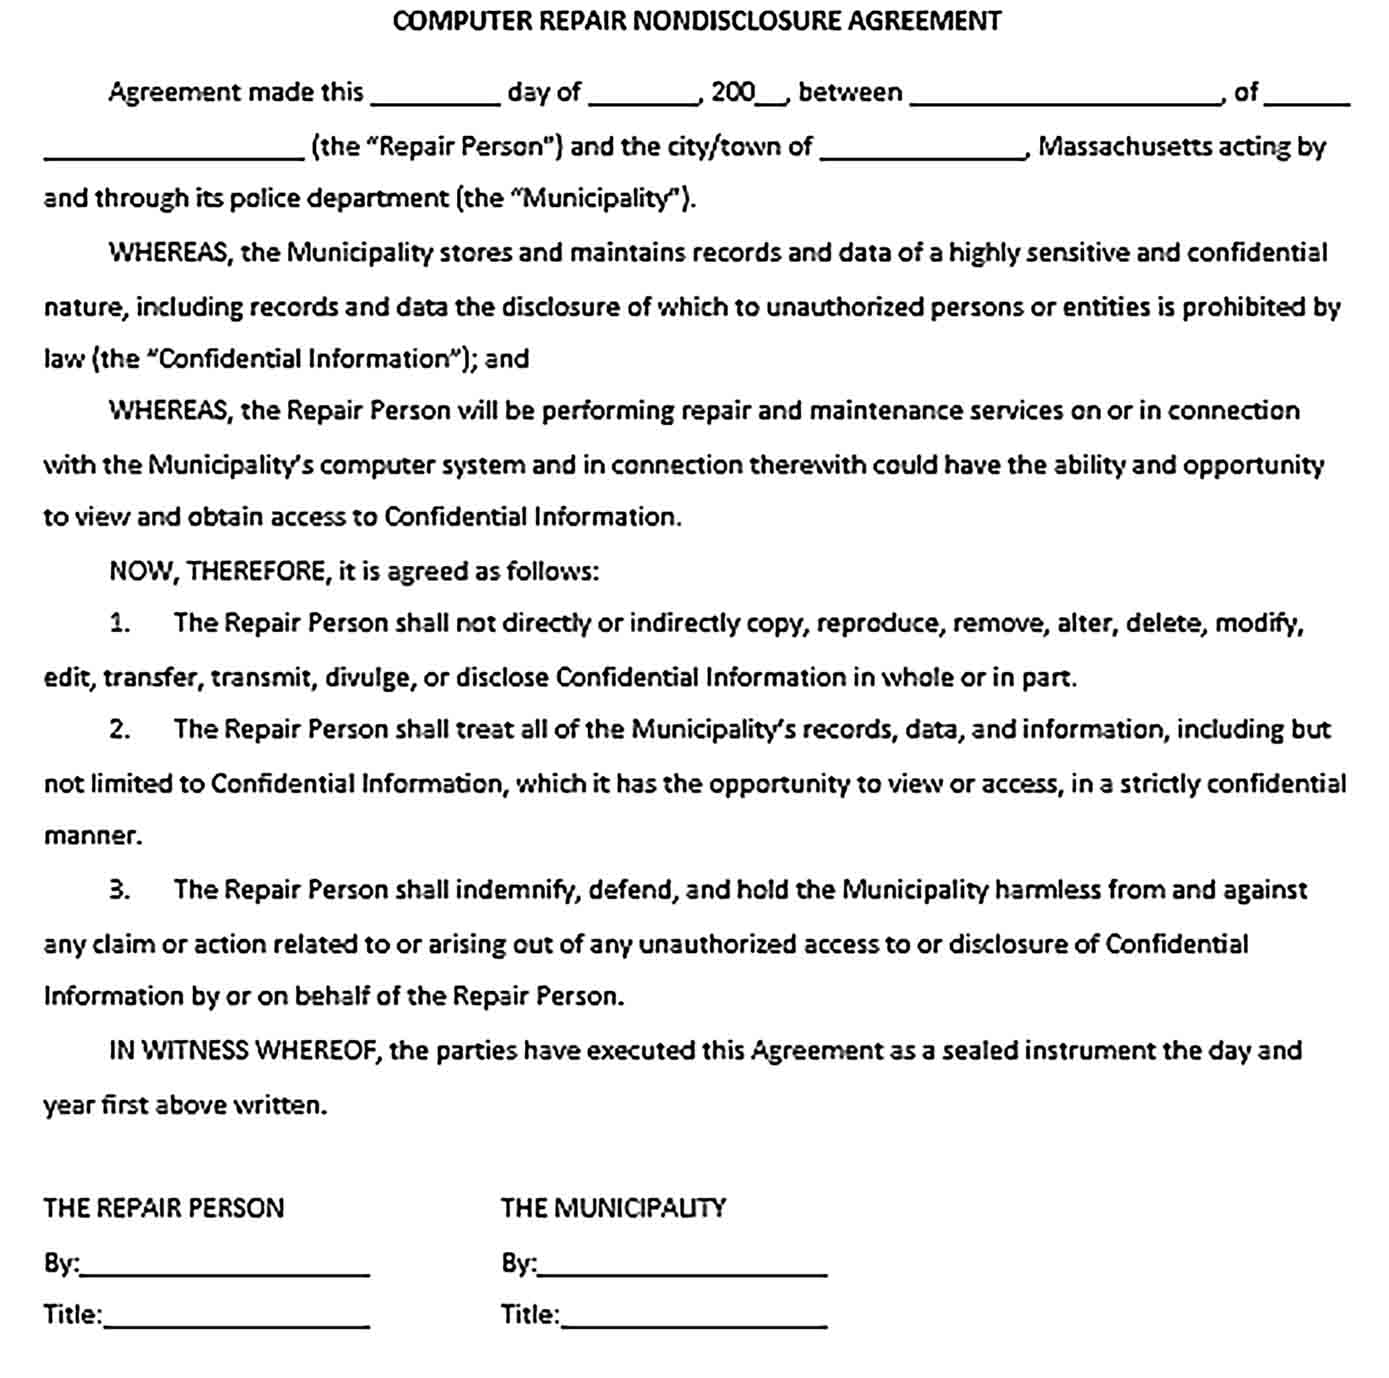 Sample Computer Repair Non Disclosure Confidentiality Agreement DOC